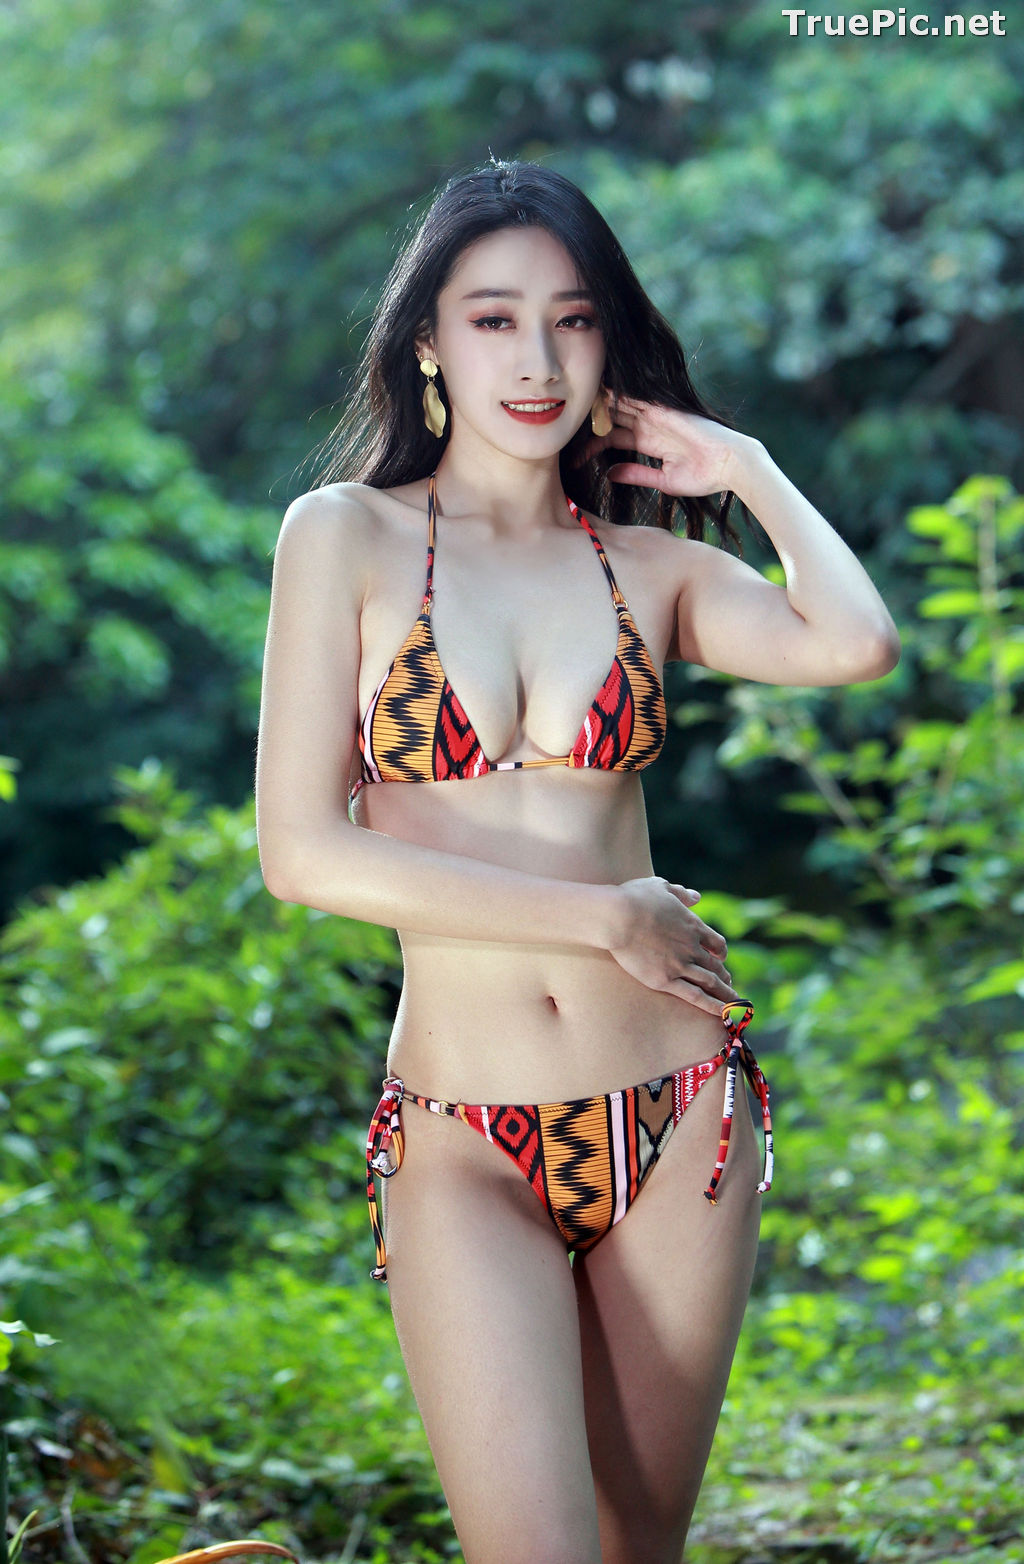 Image Taiwanese Model - 段璟樂 - Lovely and Sexy Bikini Baby - TruePic.net - Picture-7